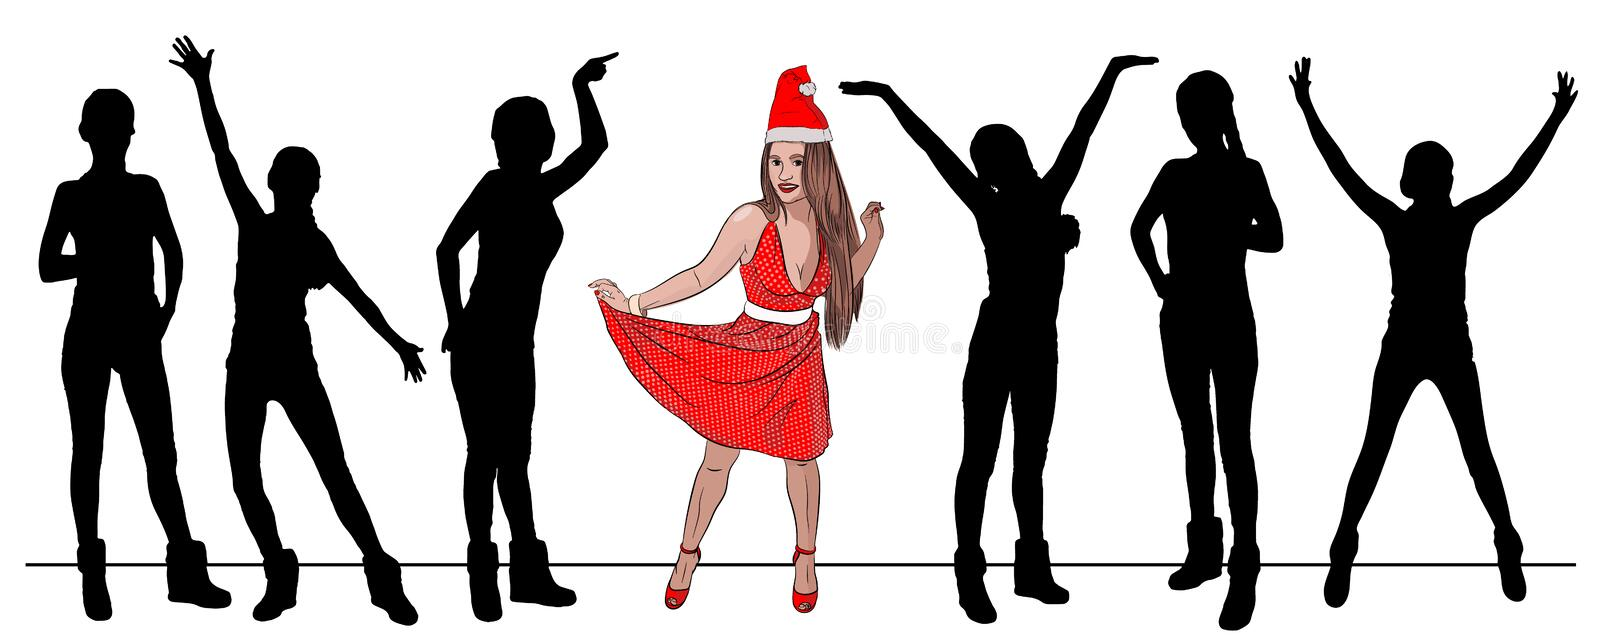 beauty contest santa claus woman in vector illustration